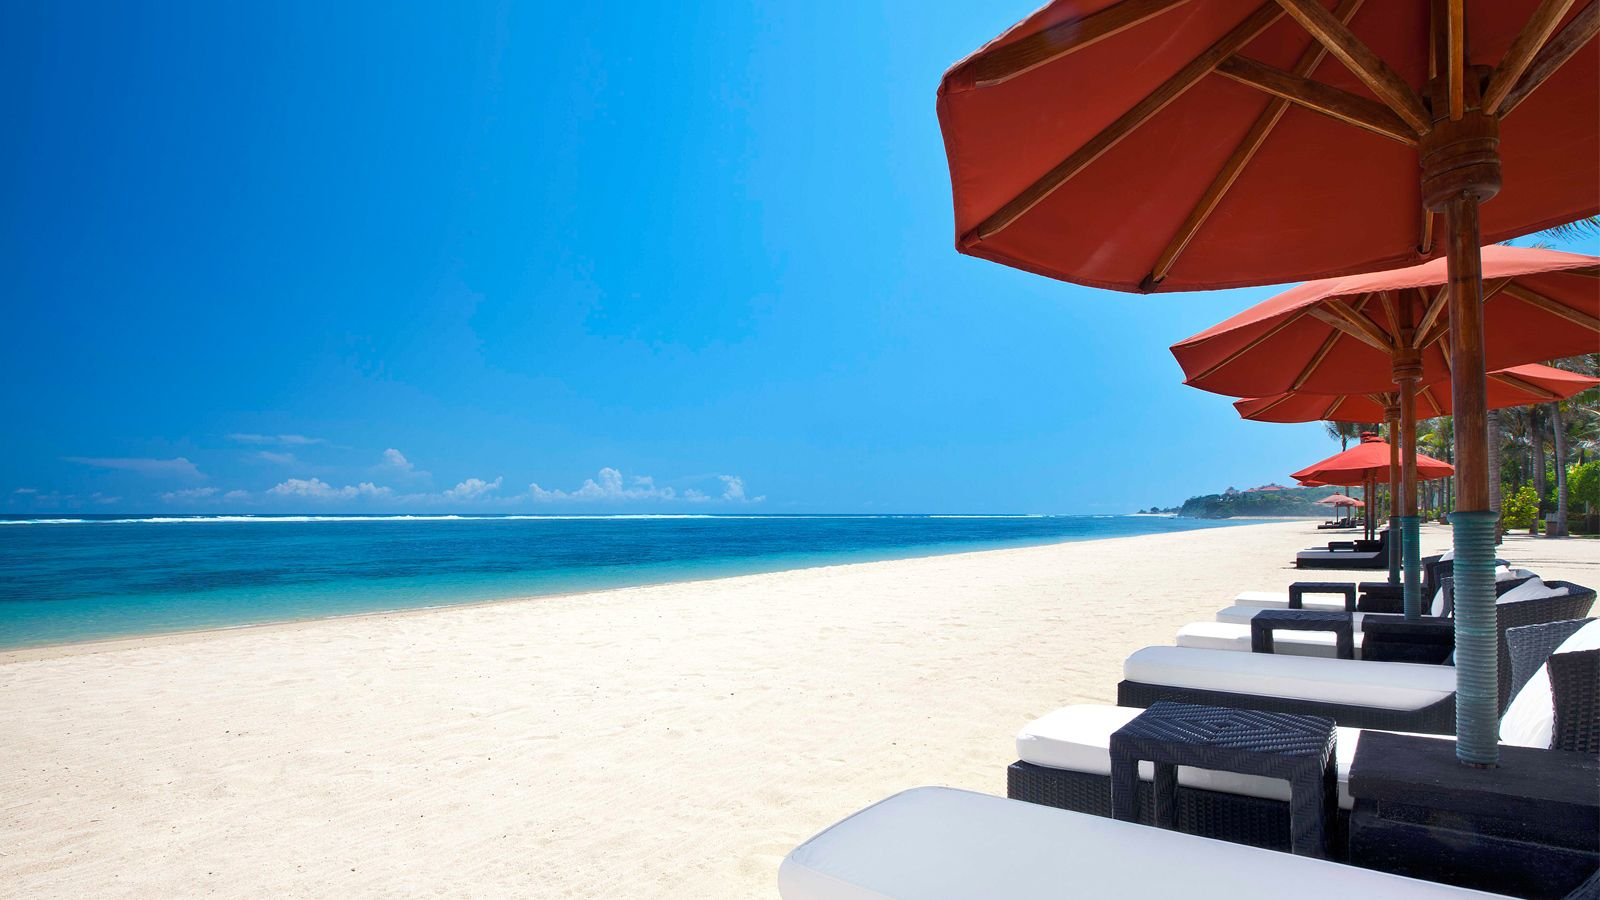 Prestine White Sand Beach at The St. Regis Bali Resort